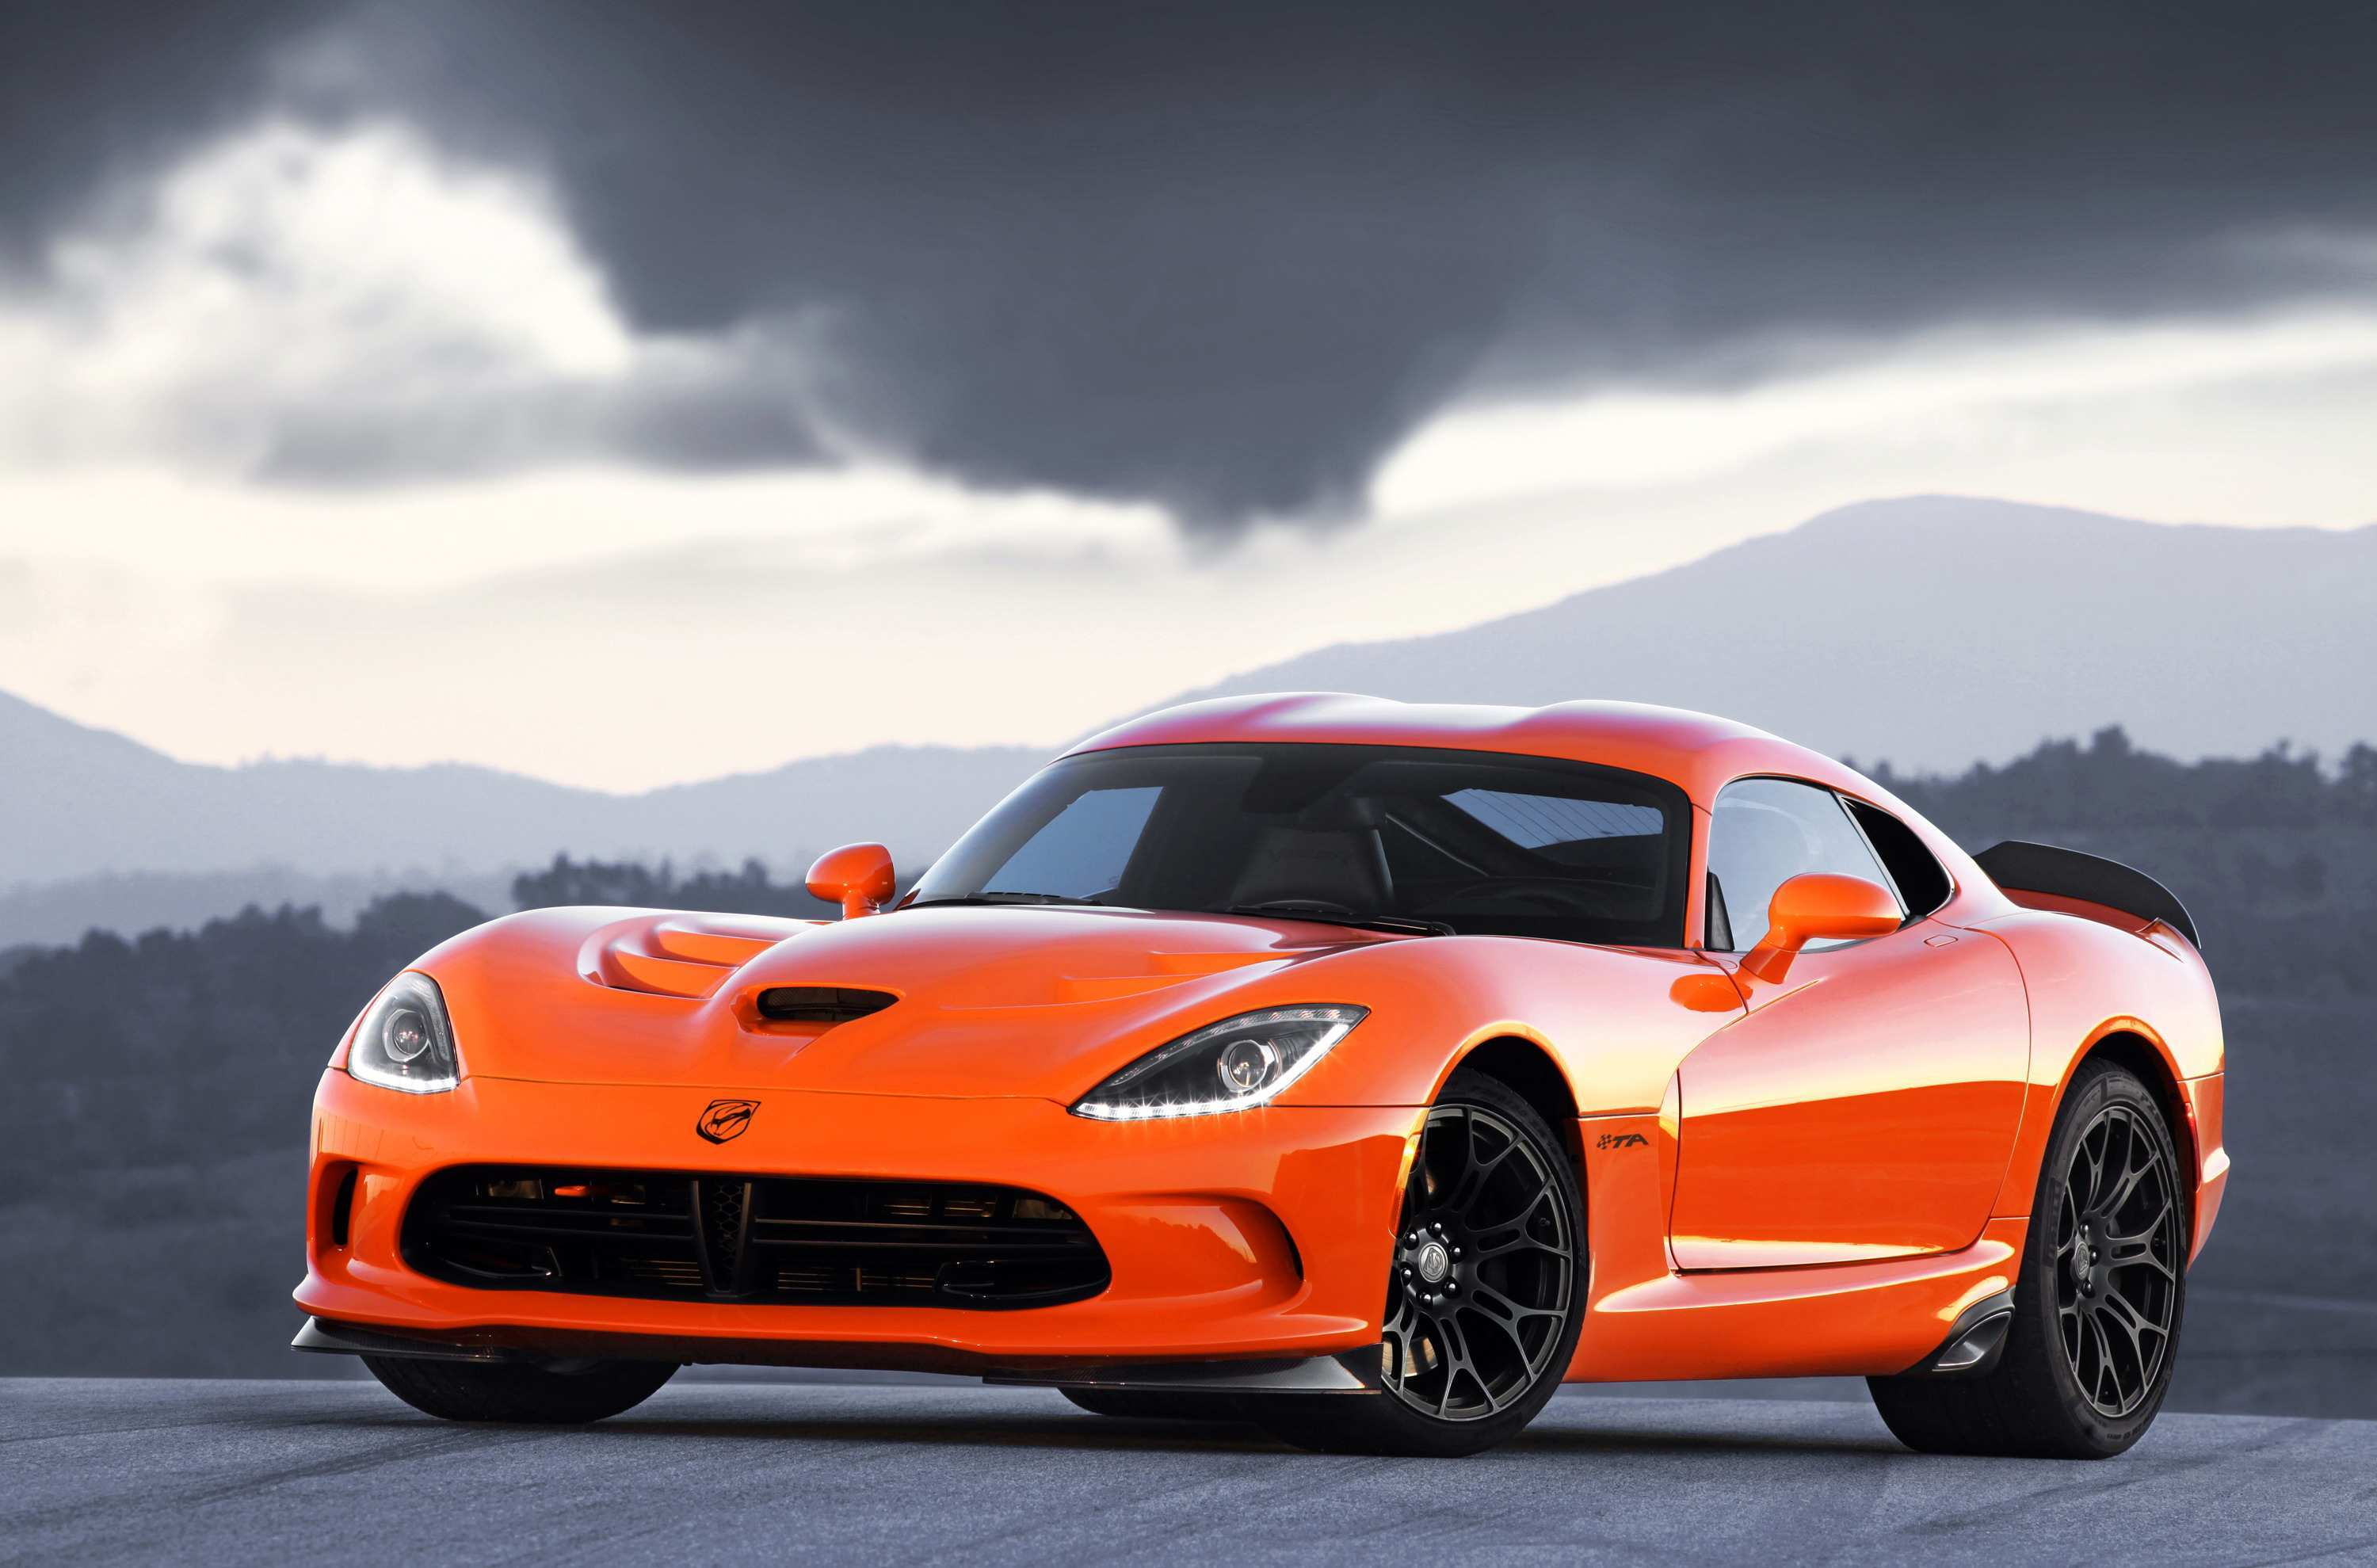 85 Concept of 2020 Dodge Viper Mid Engine Spesification with 2020 Dodge Viper Mid Engine